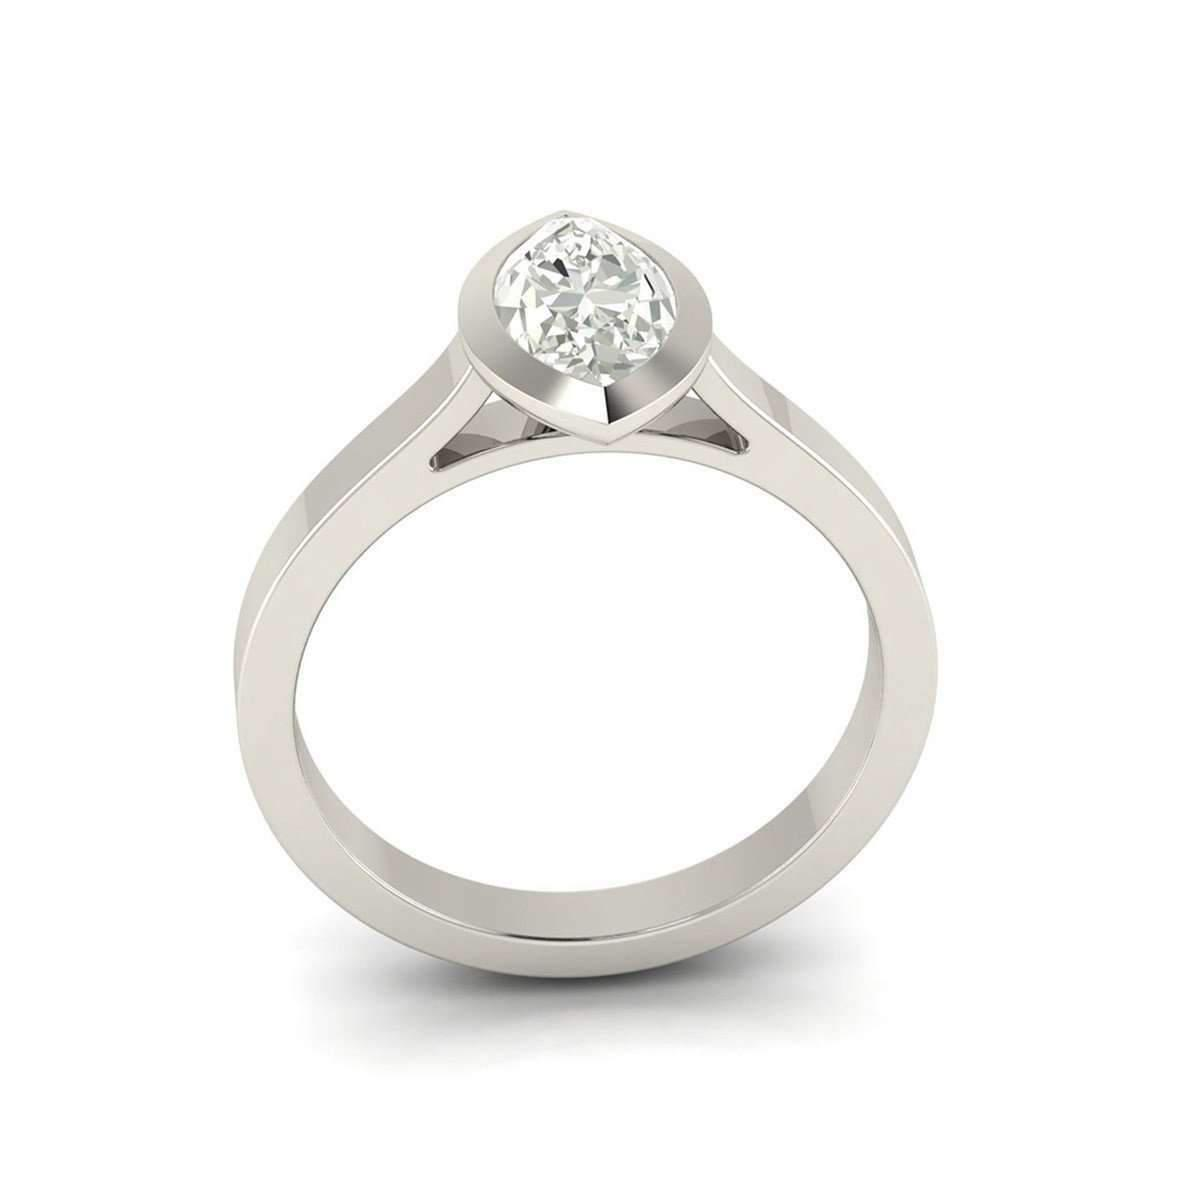 5Ine Jewels Classic Solitaire Marquise Cut Diamond Engagement Ring in Metallic